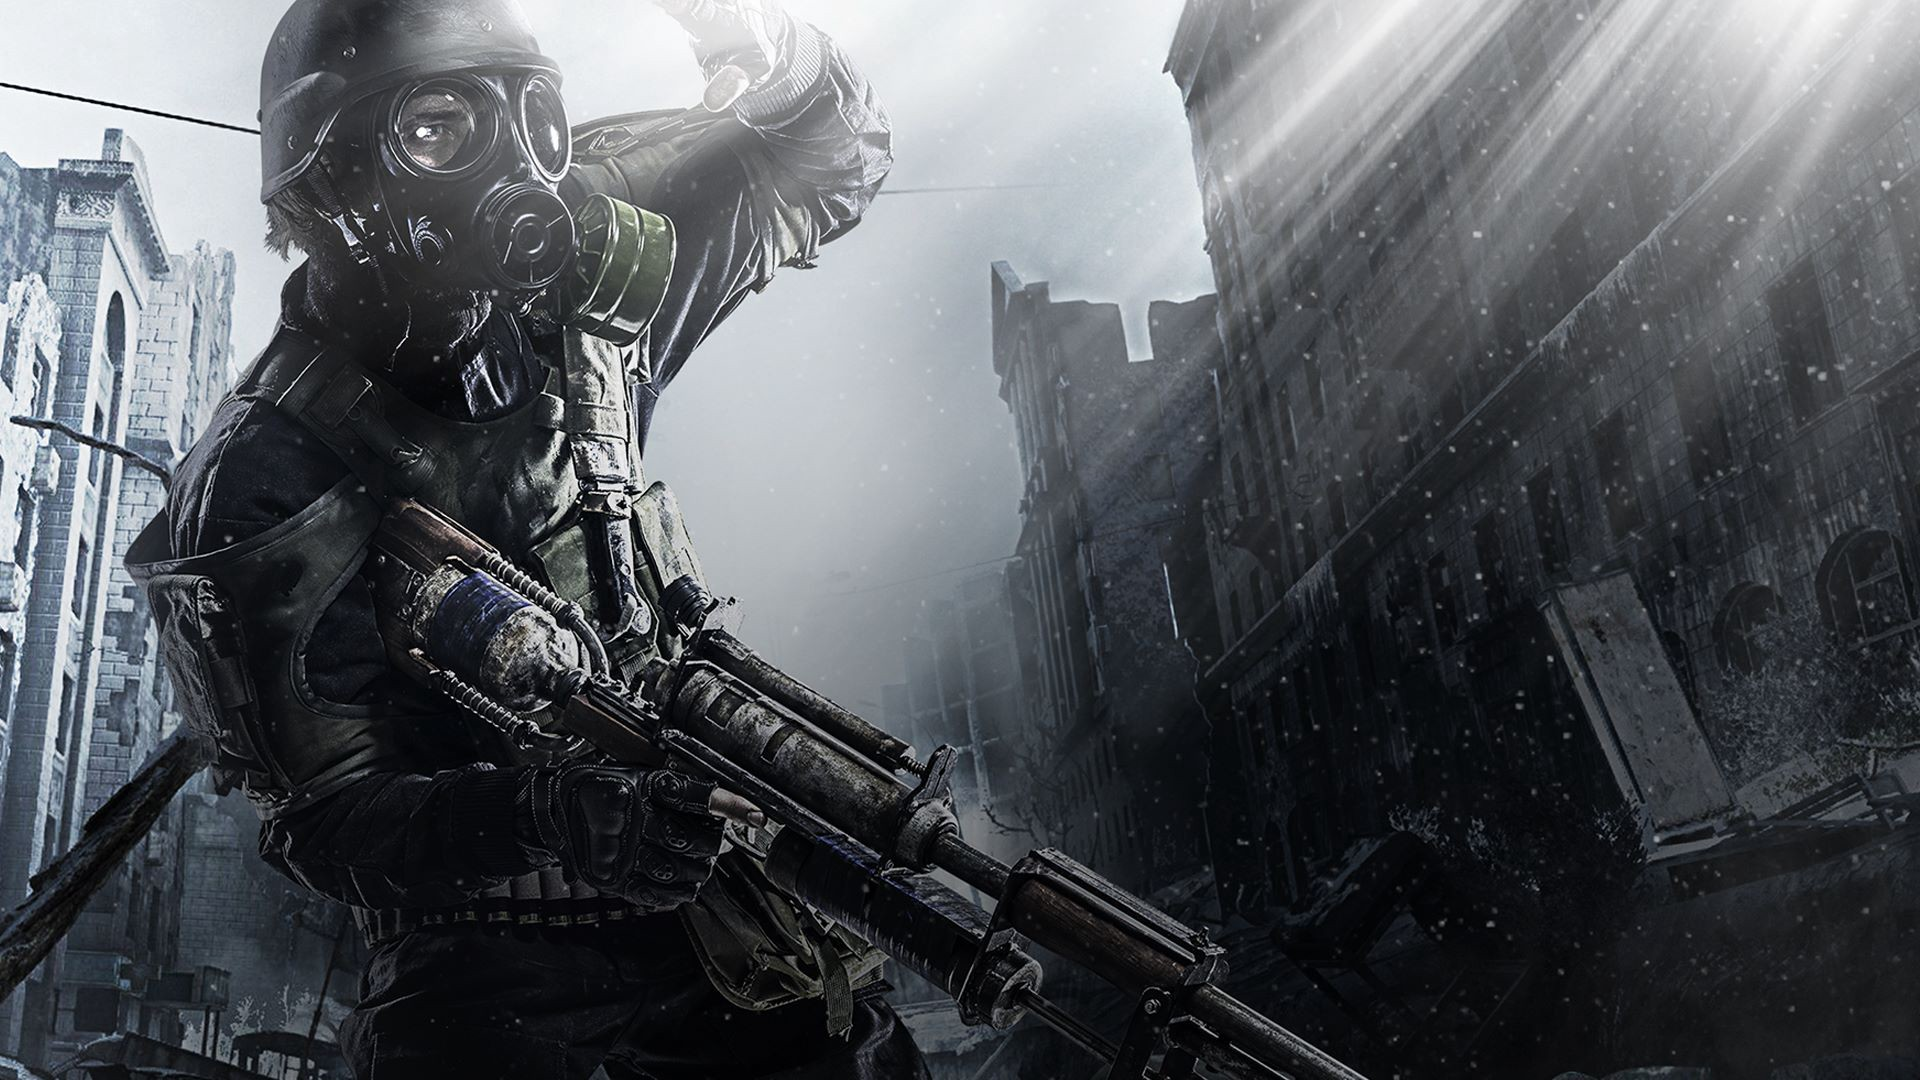 Metro 2033: Dated Gameplay, but Not-So-Dated Story - Edmond